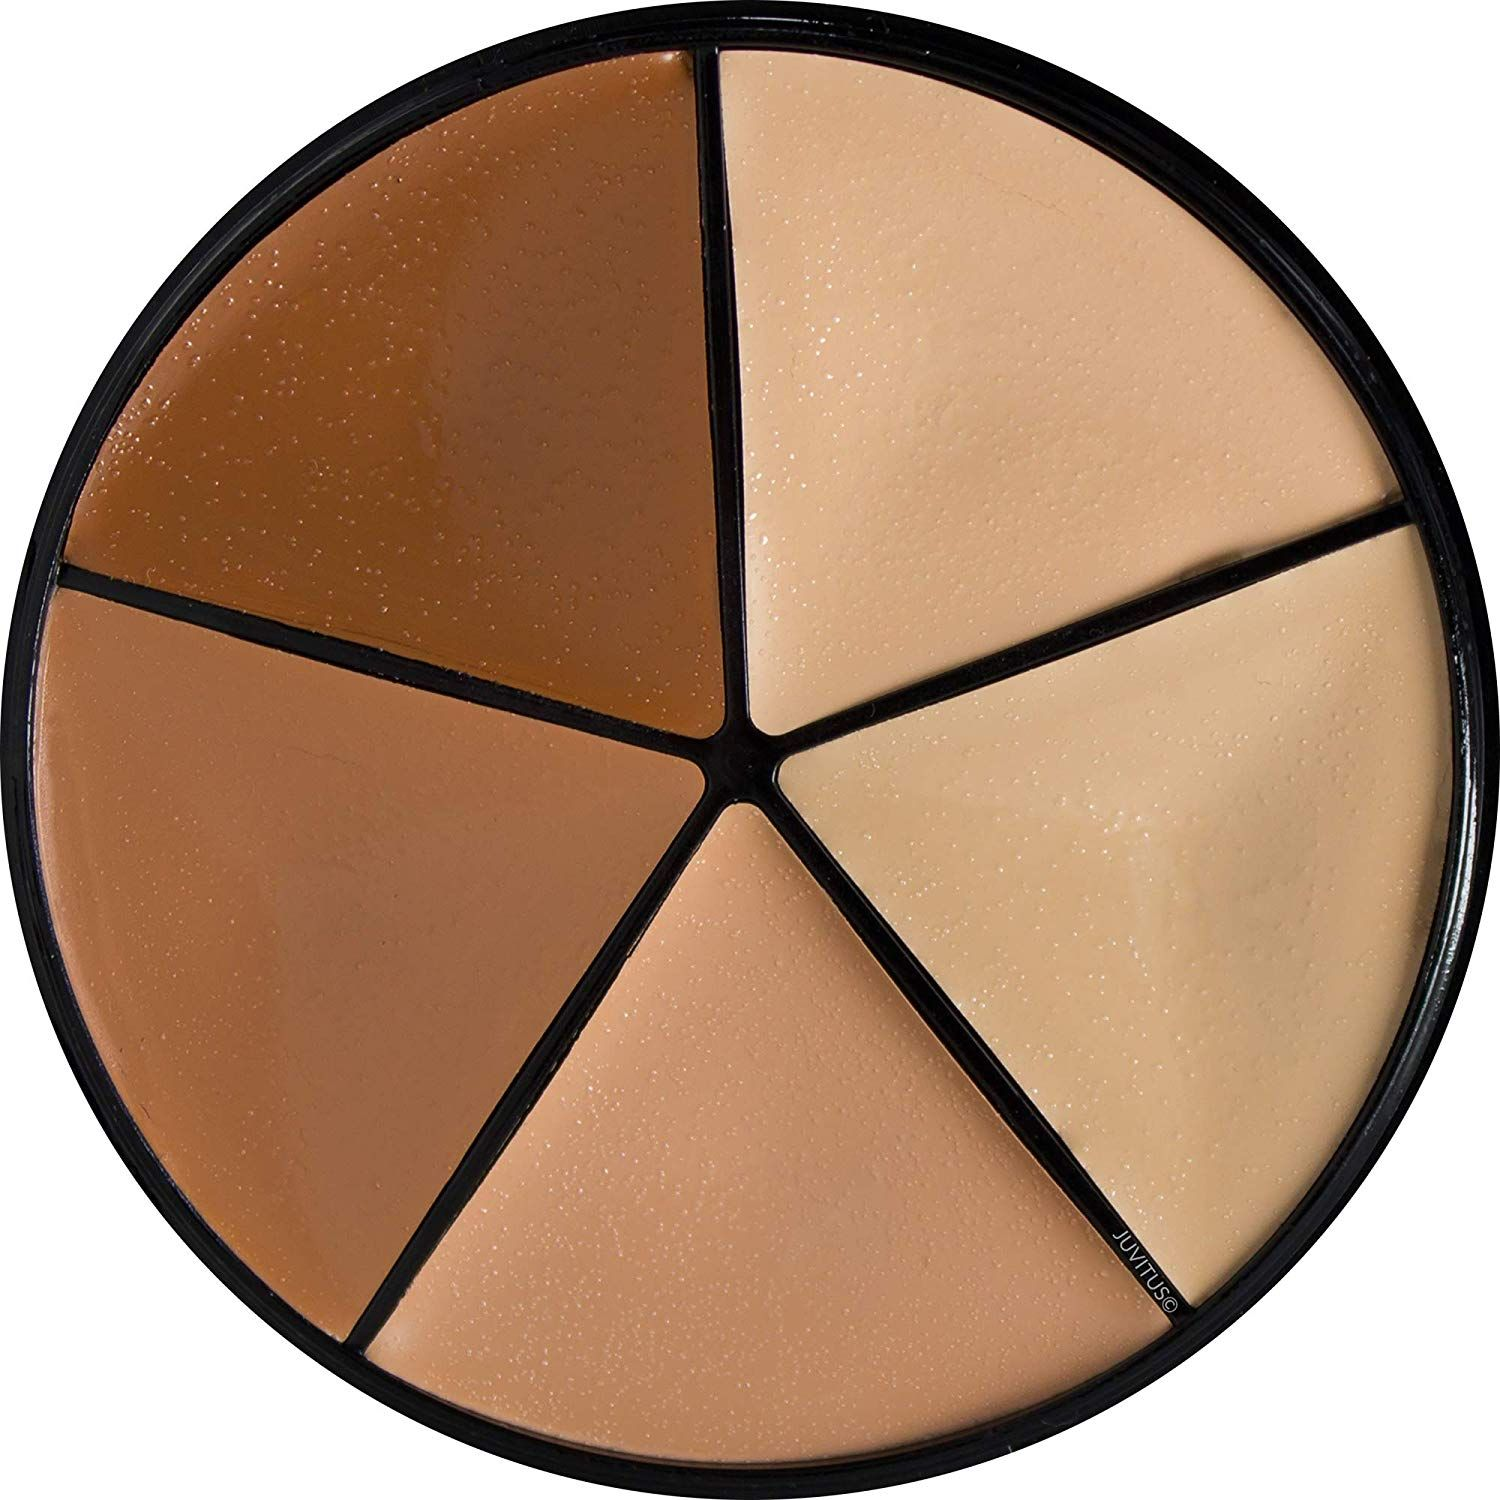 This JUVITUS Concealer Cover Wheel provides flawless, even